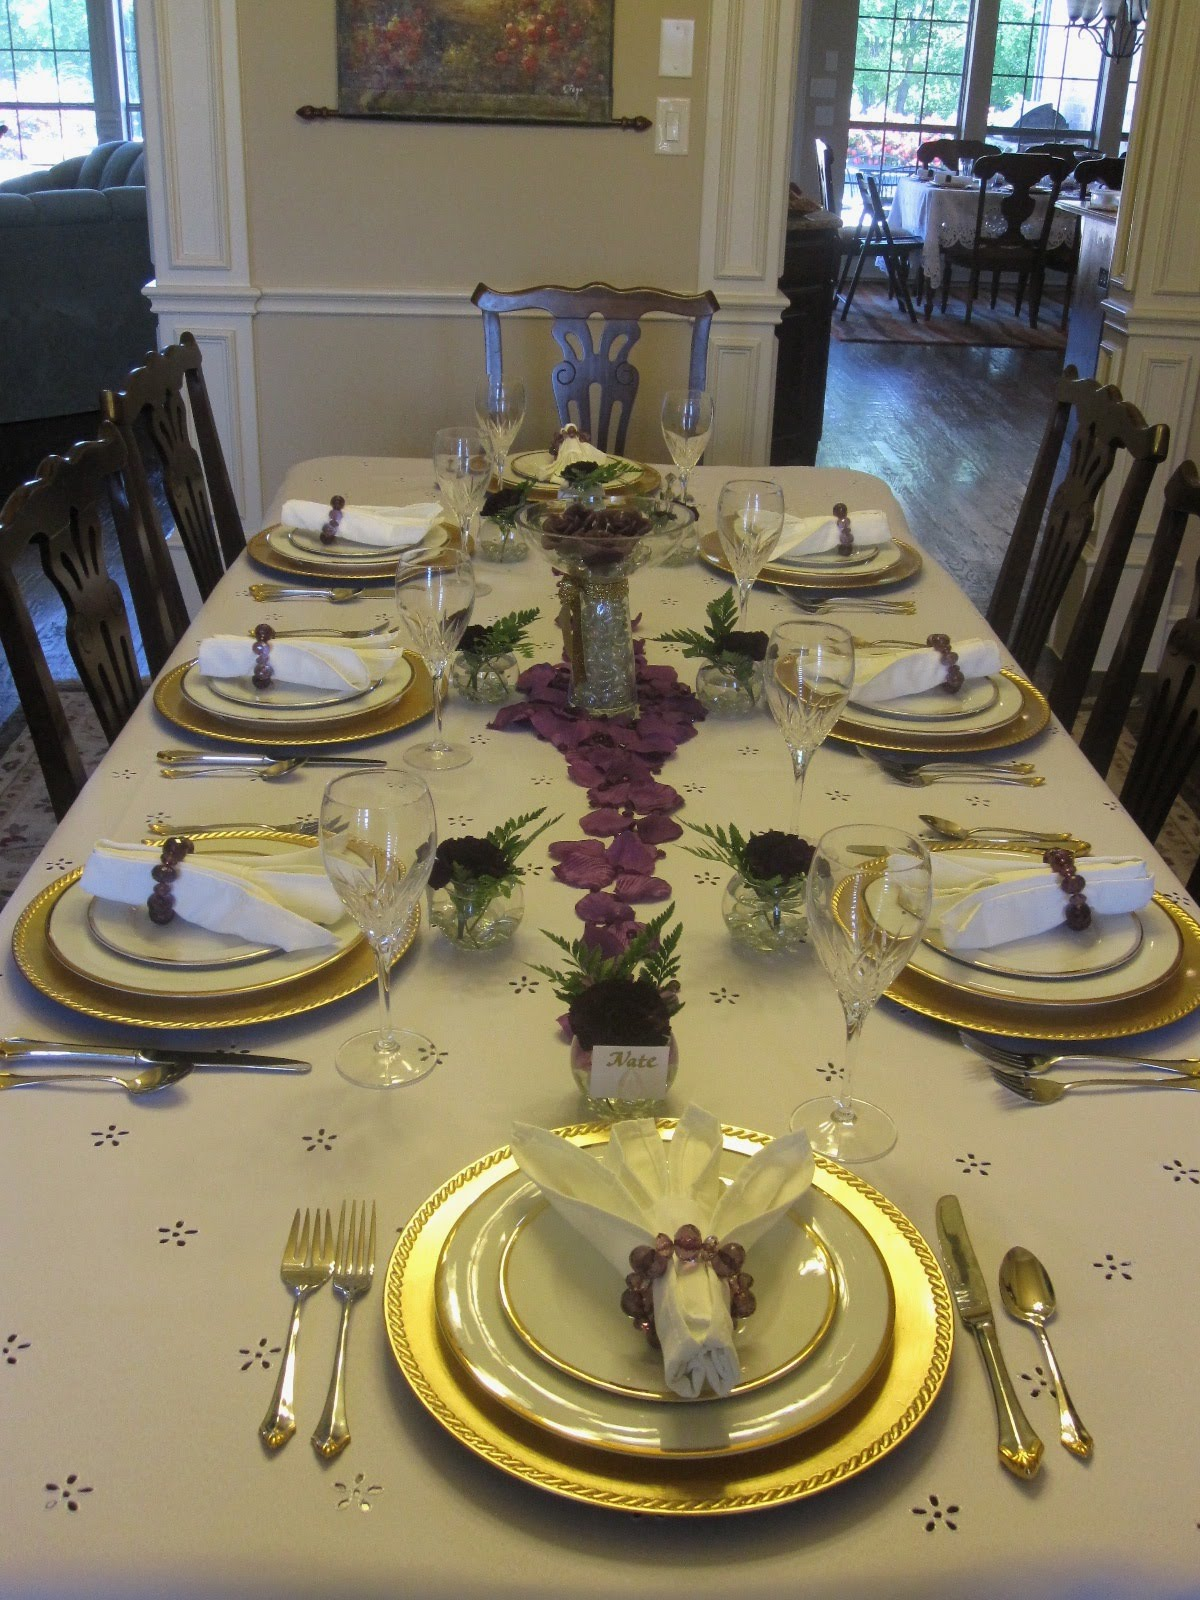 Decorative Dinner Table Setting Ideas & Creative Hospitality: Decorative Dinner Table Setting Ideas